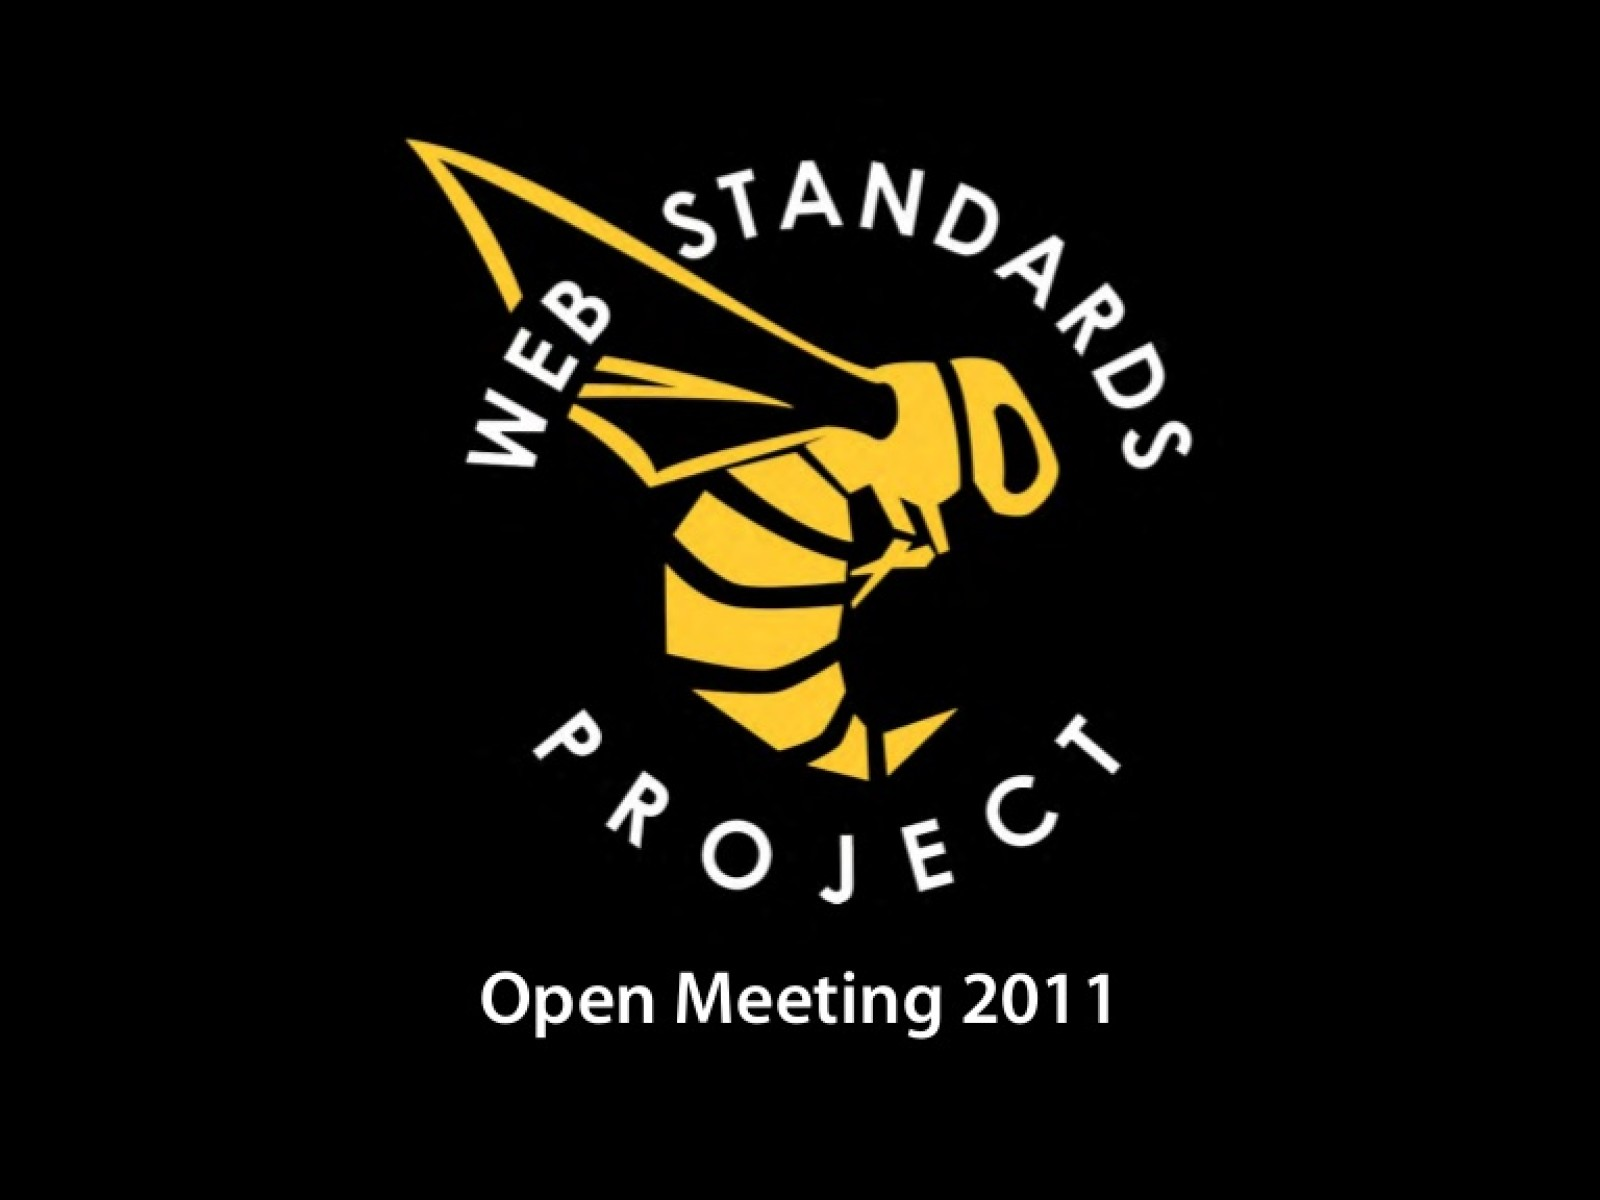 Web Standards Project 2011 Open Meeting